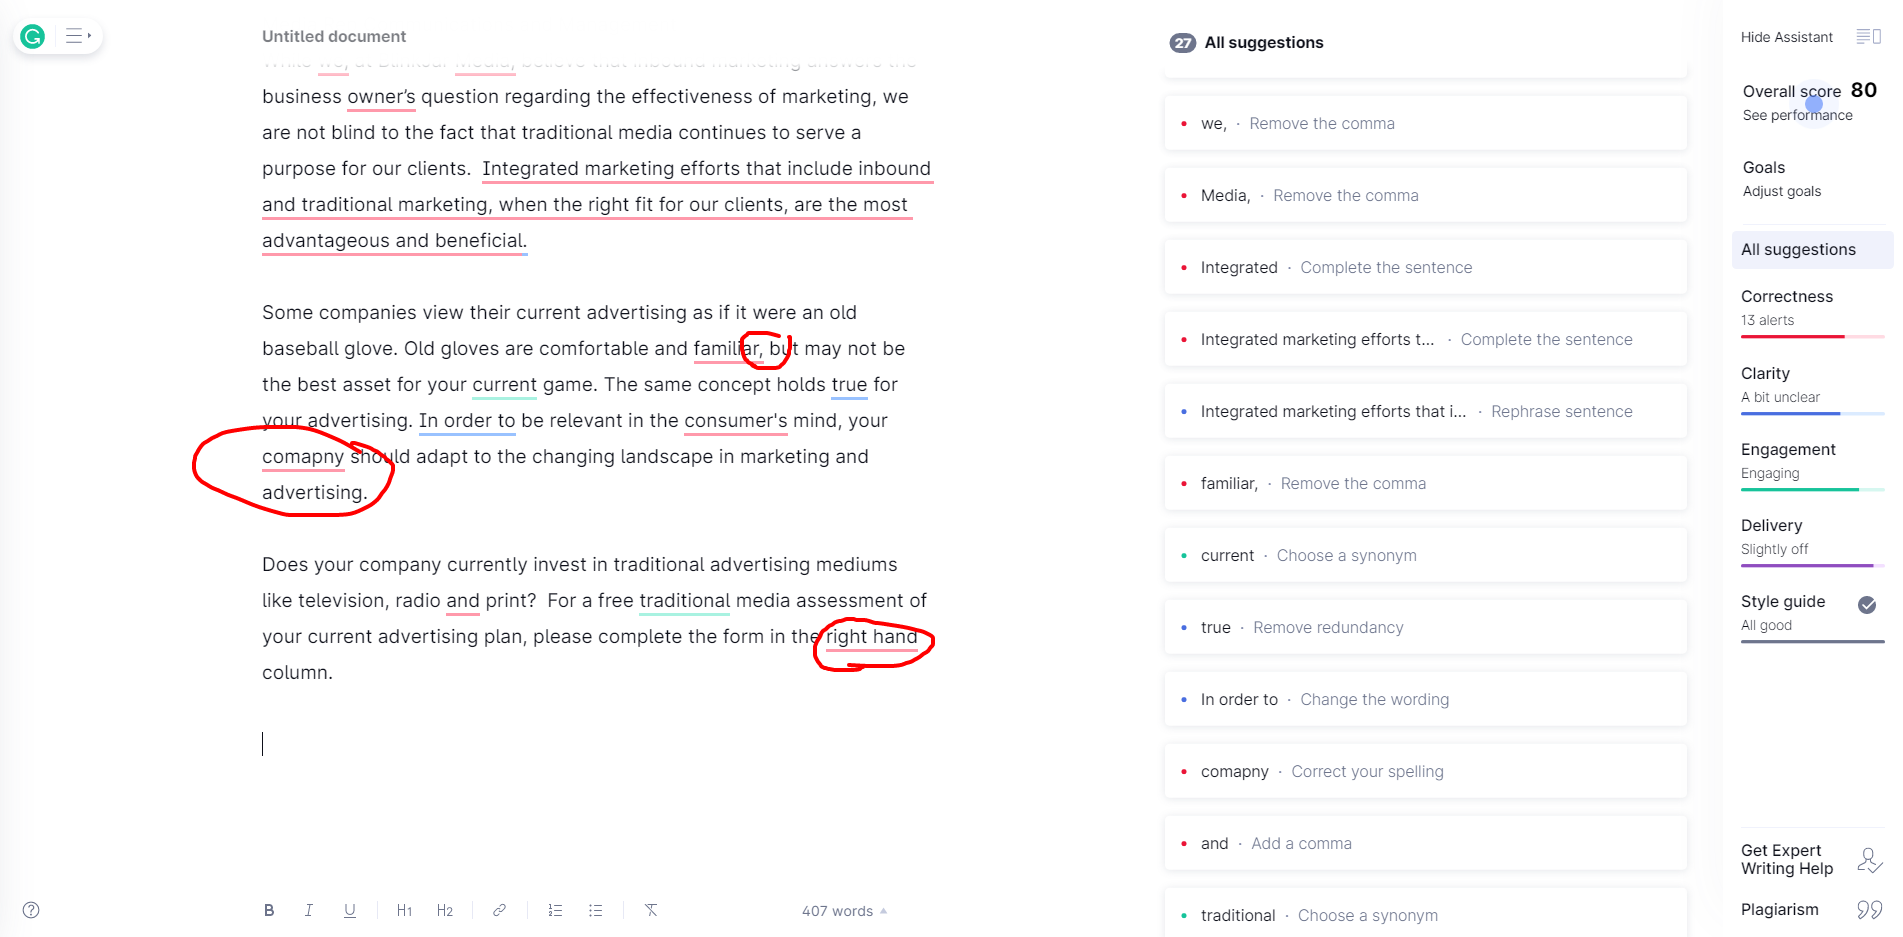 grammarly sample 2.17.21